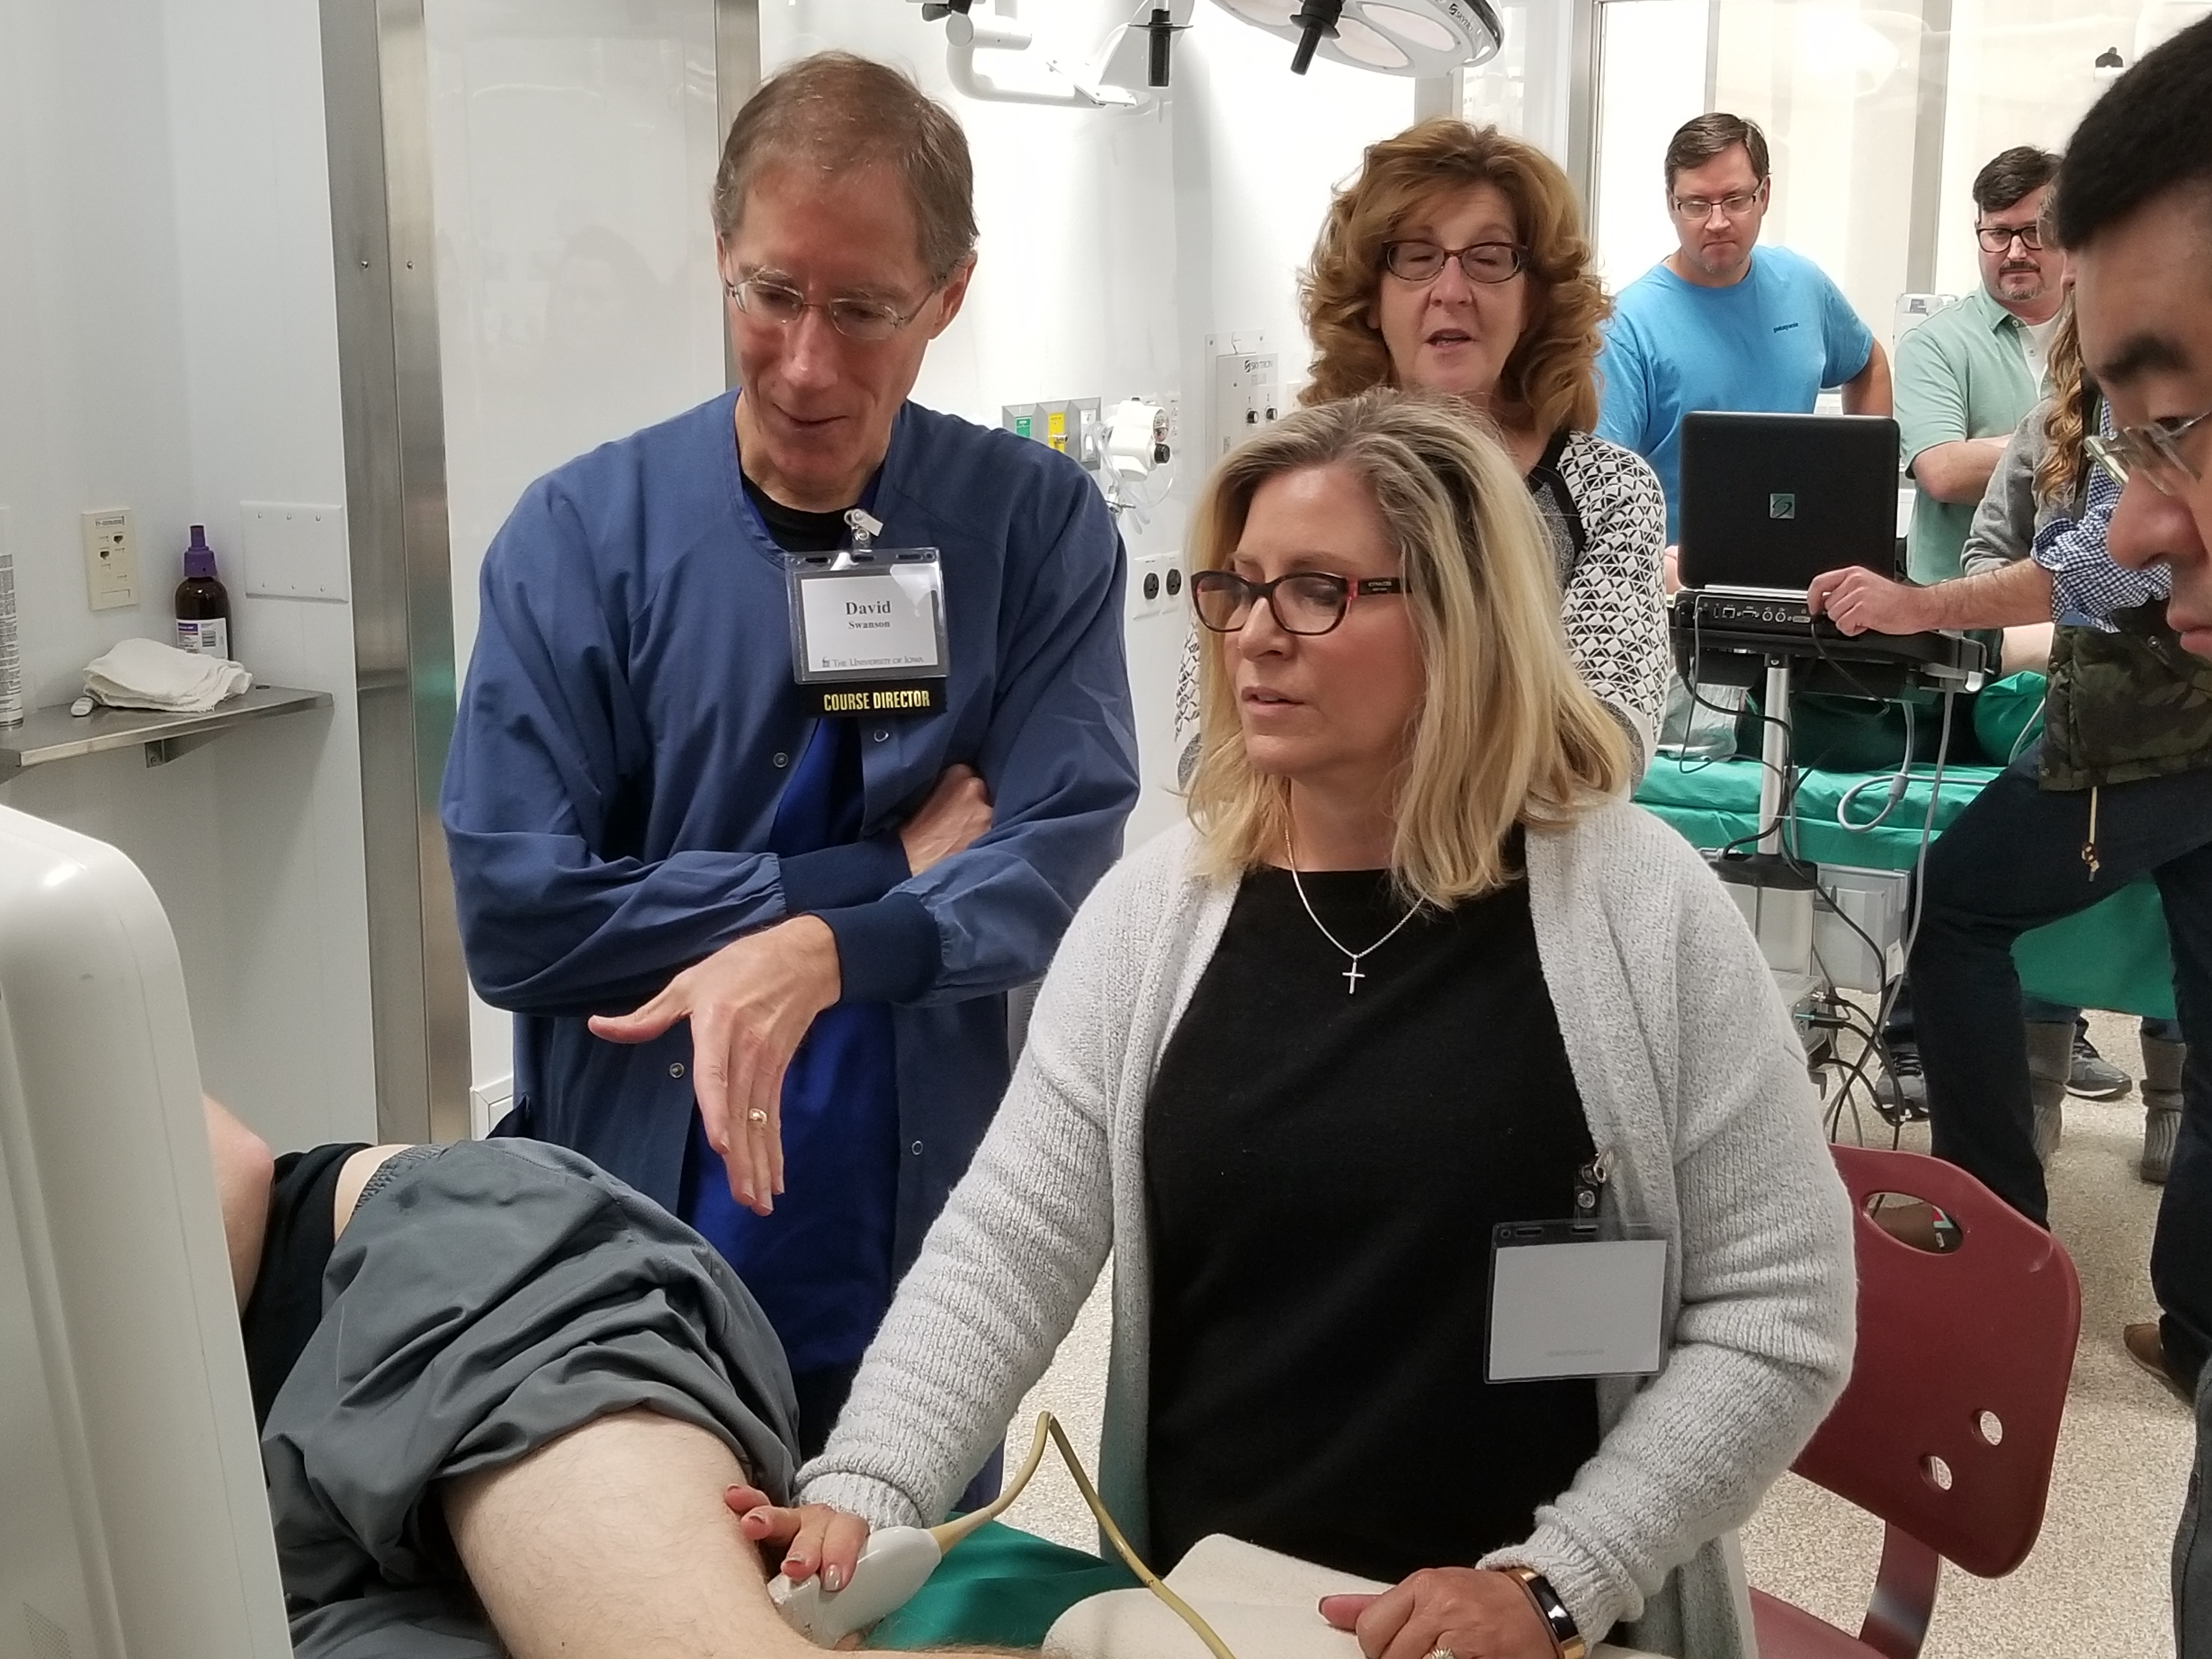 ultrasound guided regional anesthesia workshop